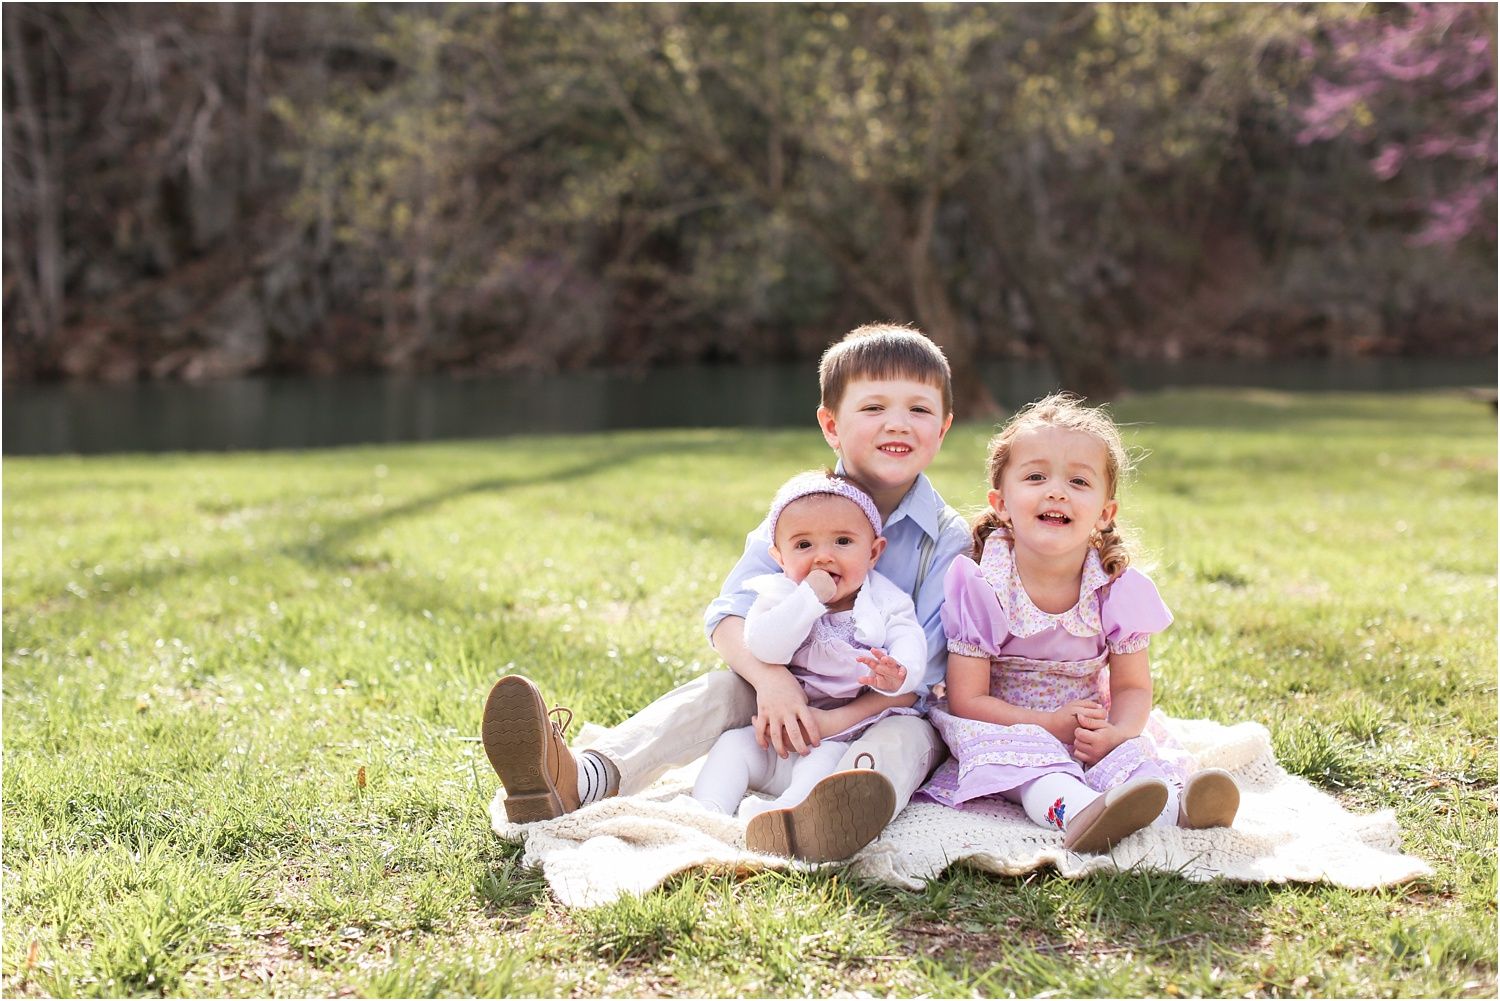 Bowers_Family_Harrisonburg_VA_Photography_0020.jpg